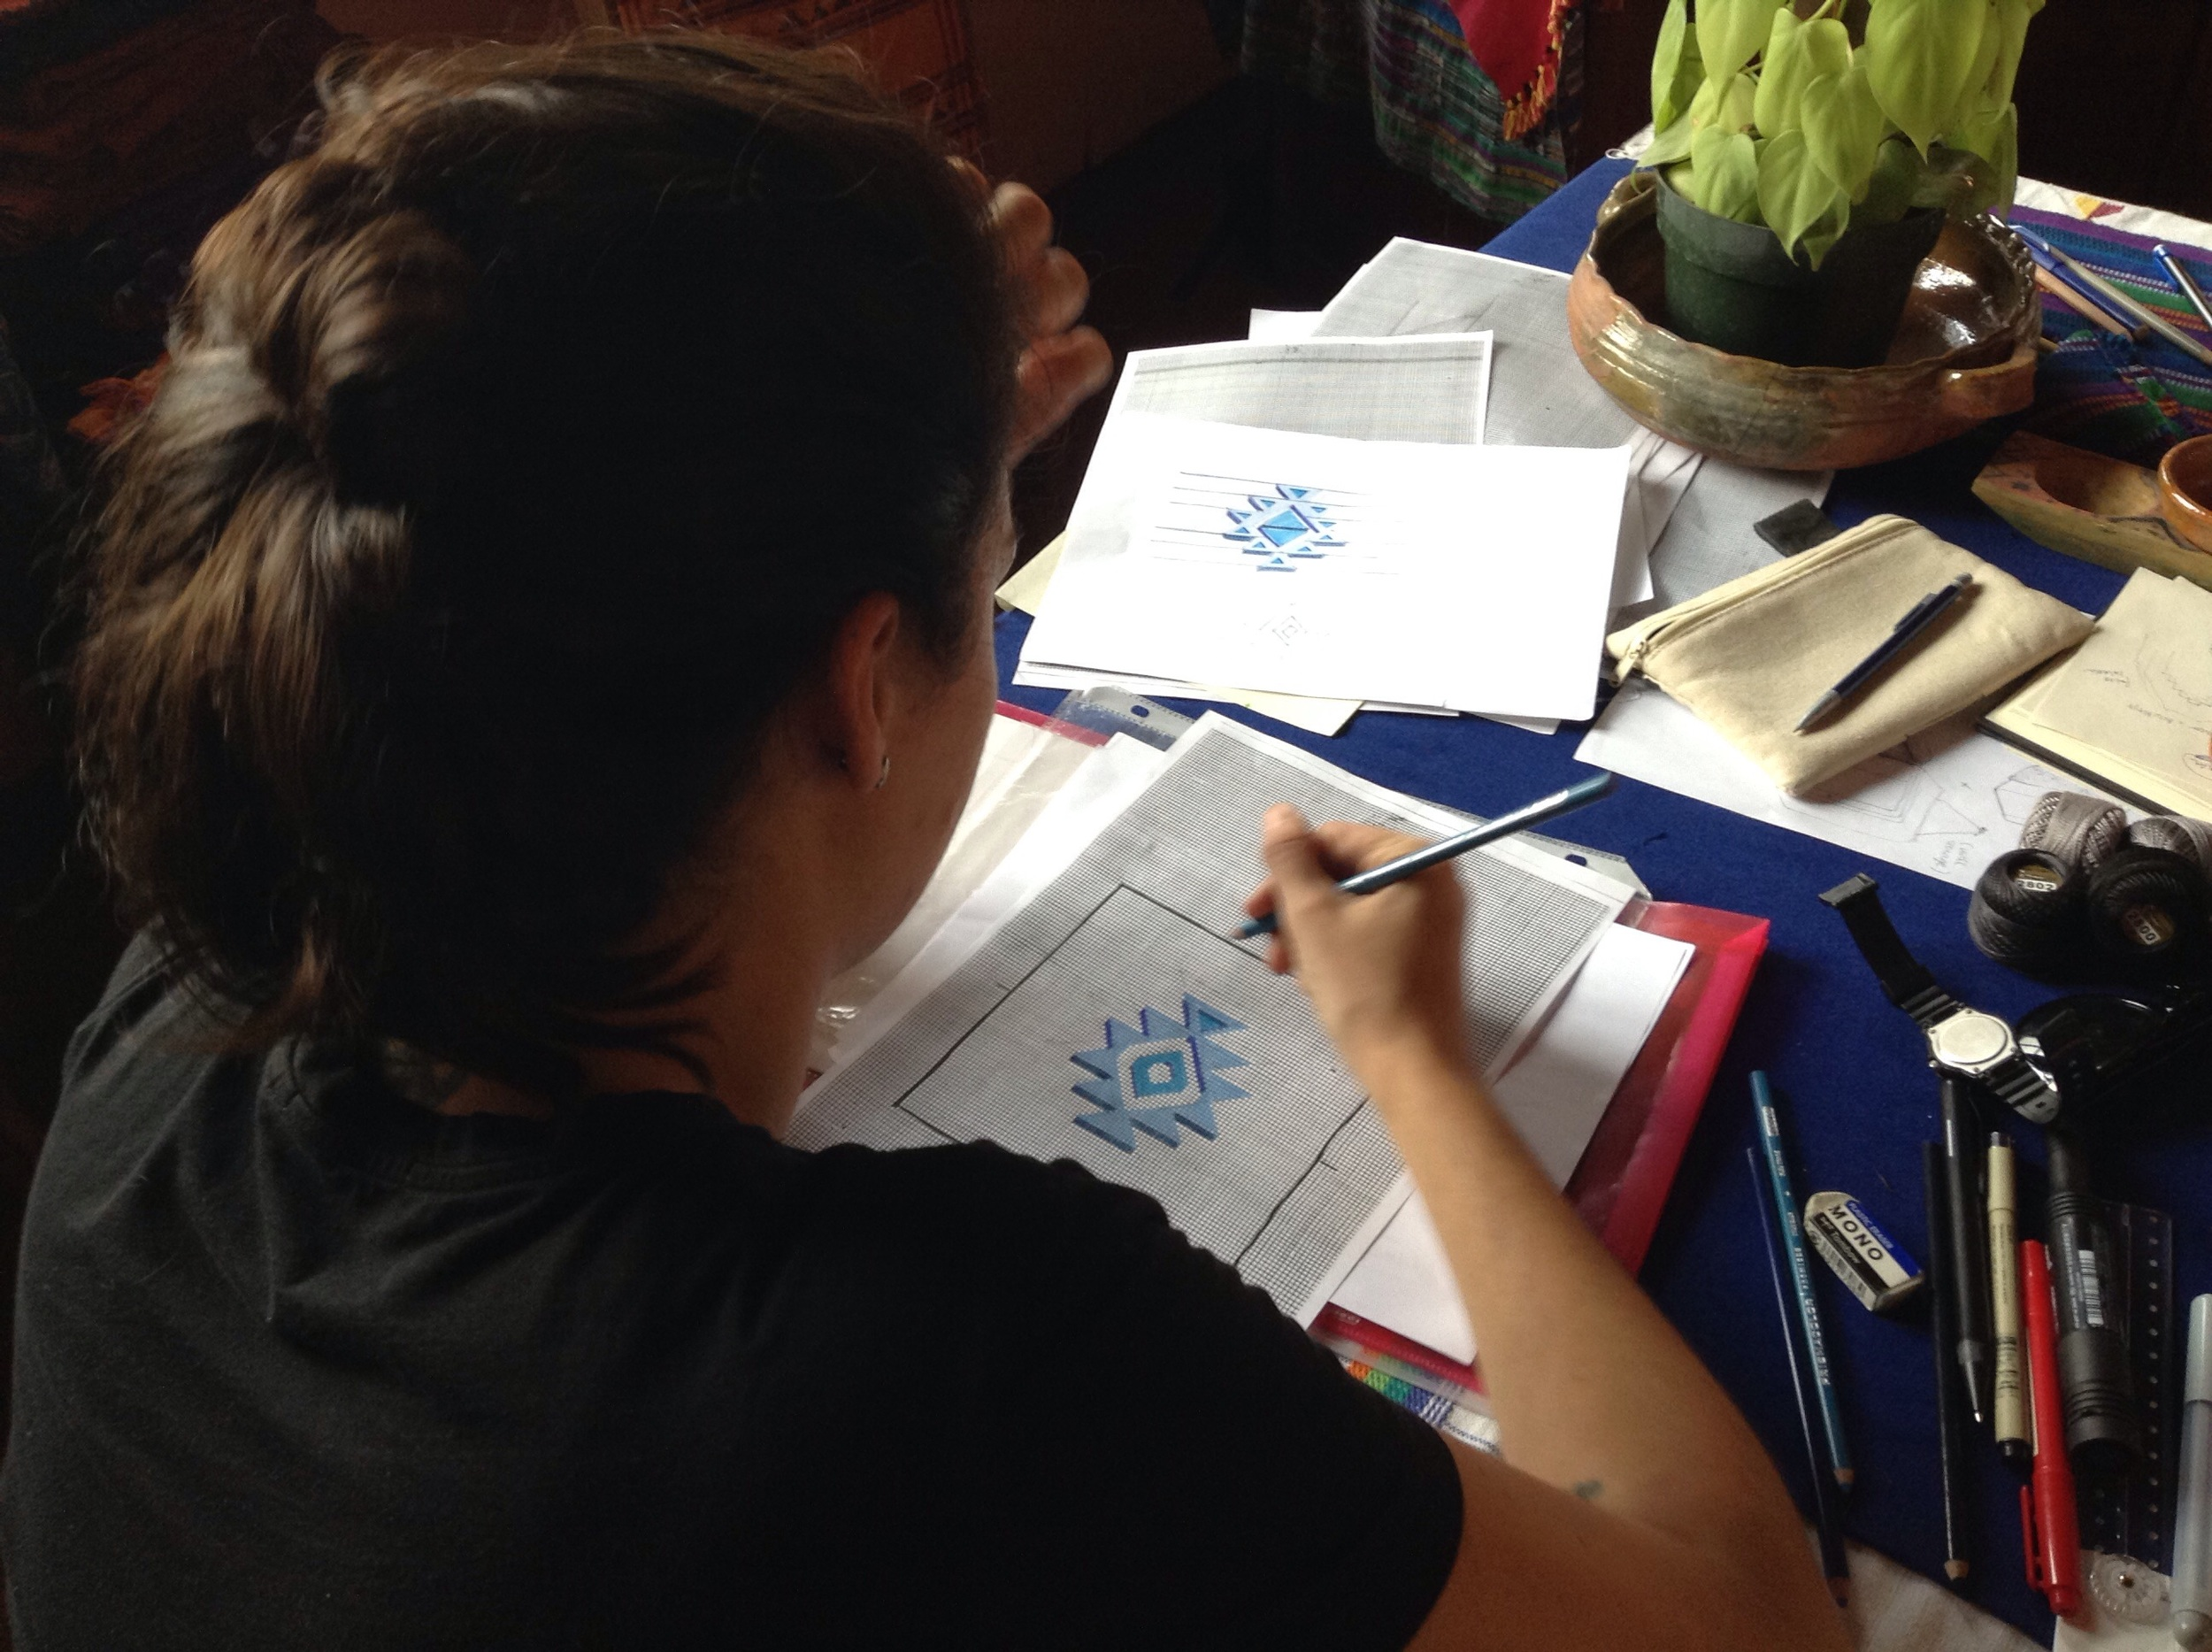 Designers sketched out their ideas on grid paper for original textile designs. Here, Aldana is mapping out her textile design.